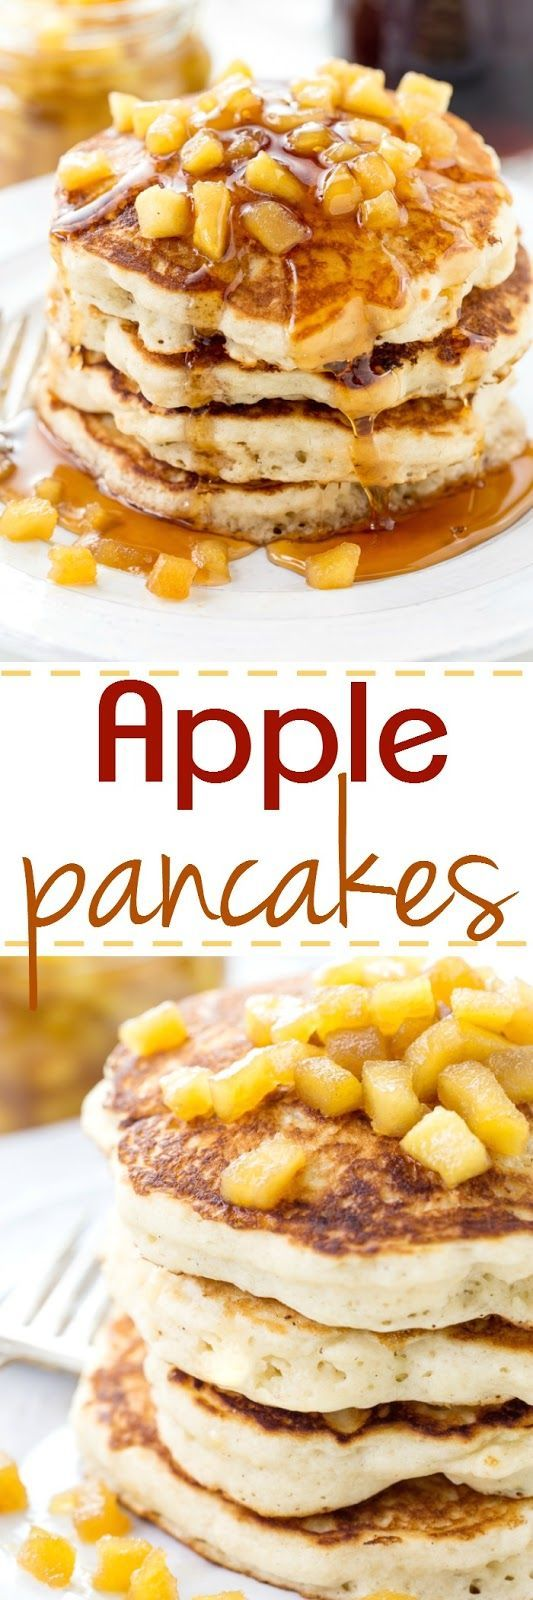 These are the fluffiest pancake recipe around and are topped with sweet apples…